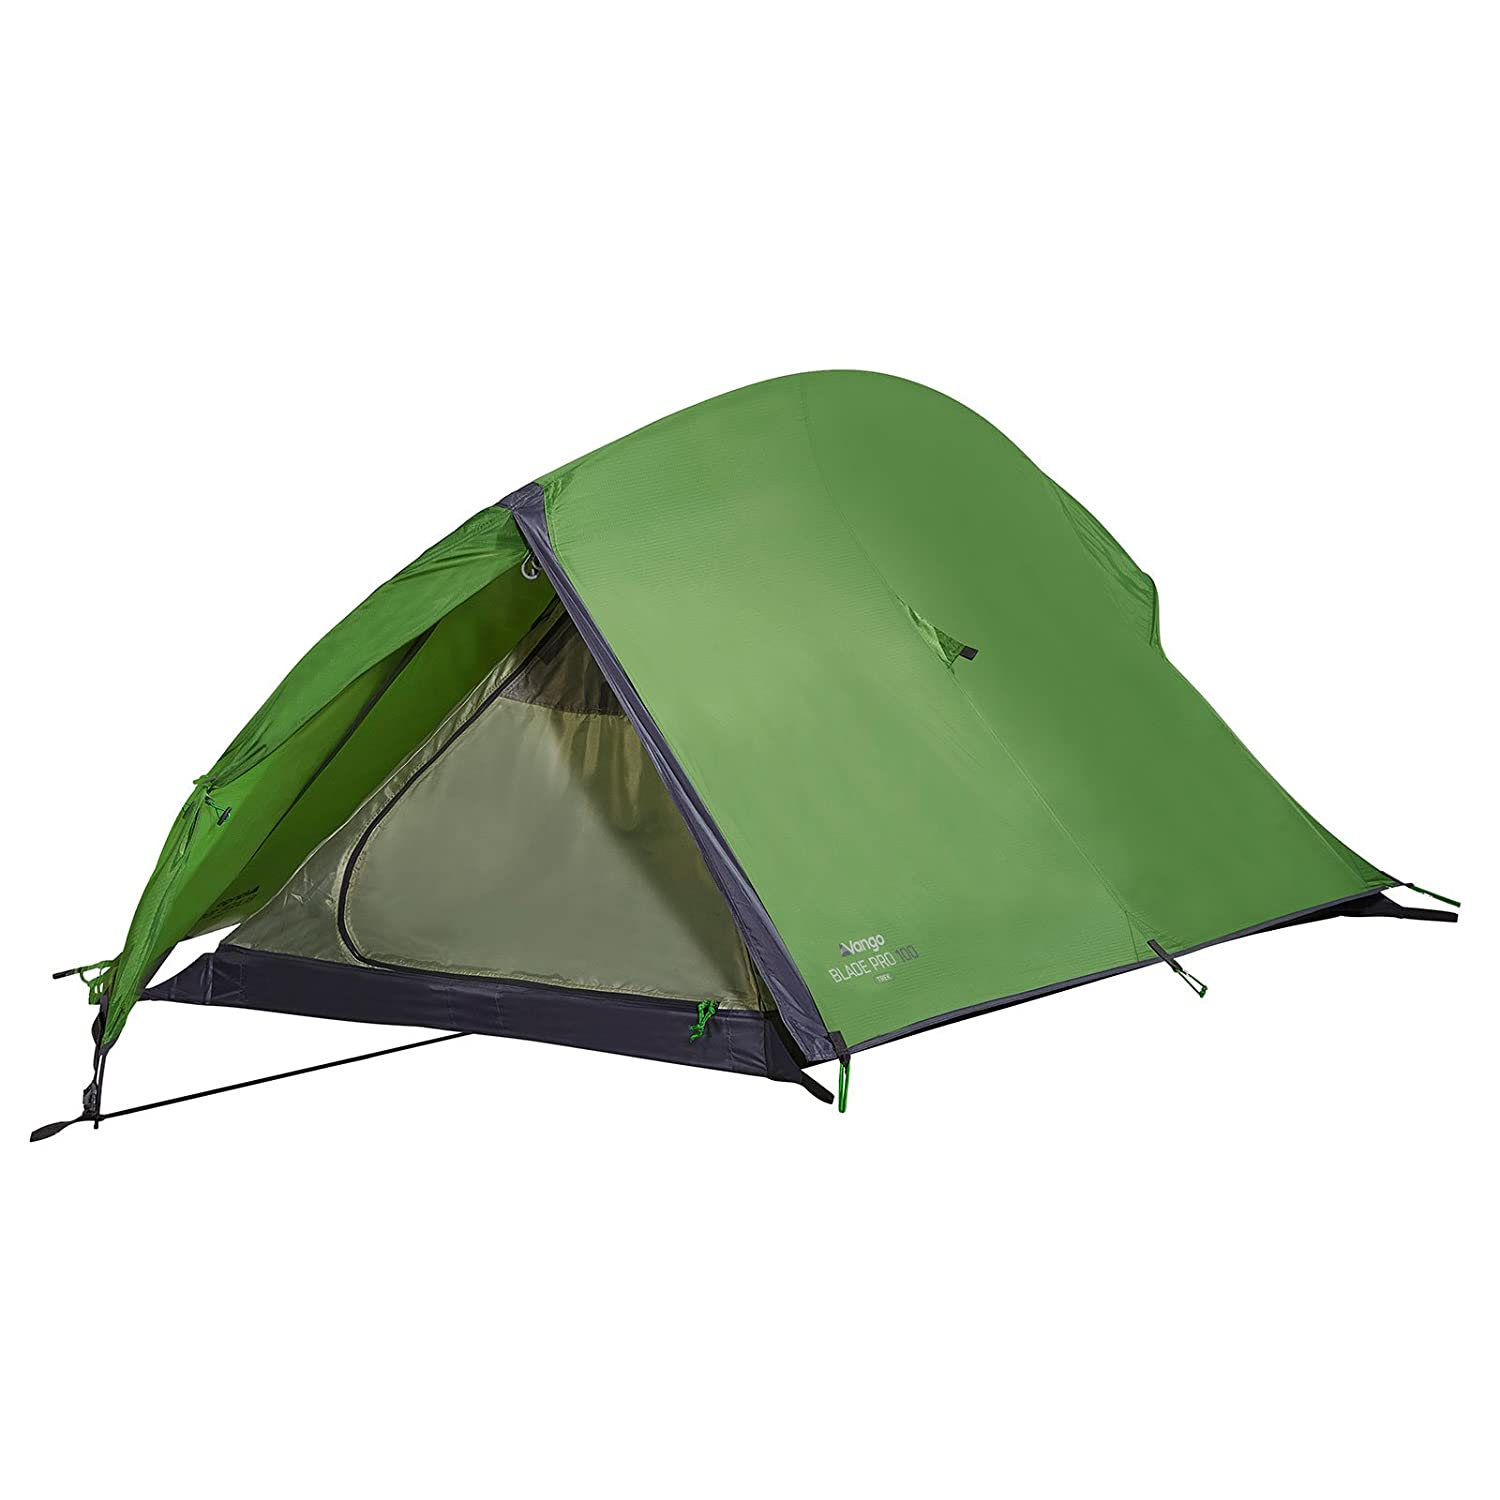 1 Man Tent - Camping Blade Pro 100 Backpacking Tent - Pamir Green - Vango